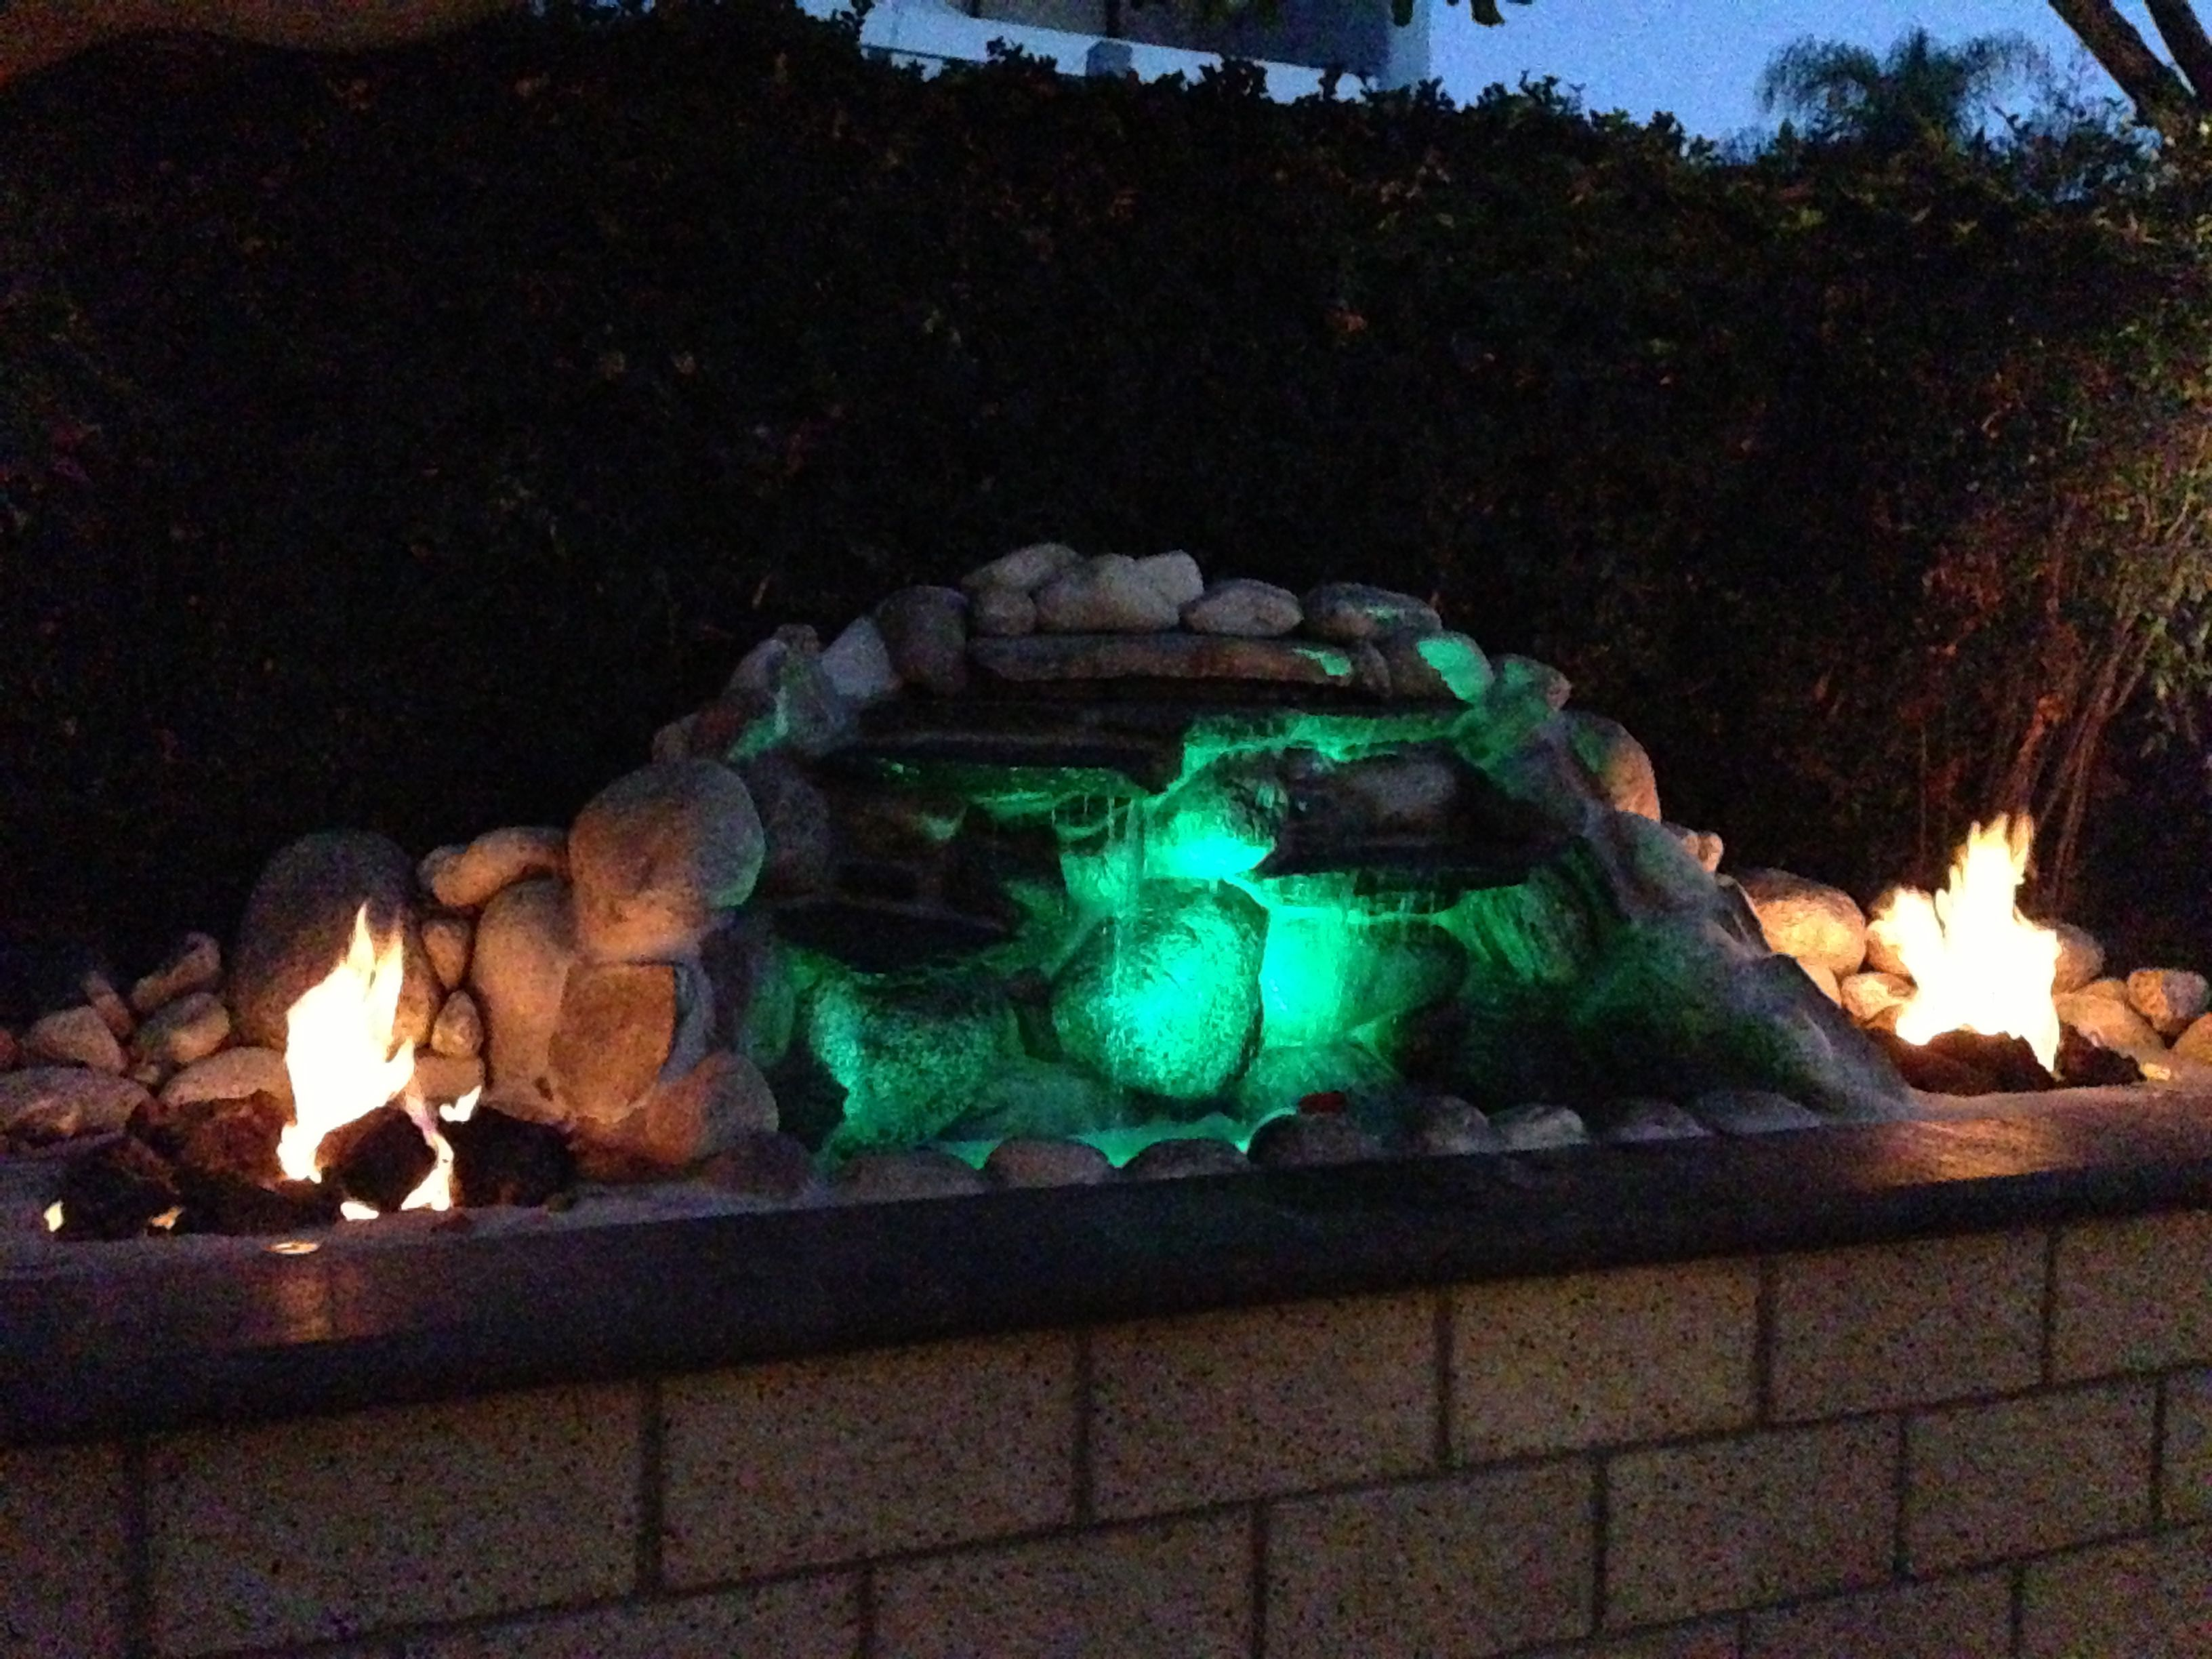 Water And Fire Features For Backyards : Cool water fire feature for backyard  Landscaping  Pinterest